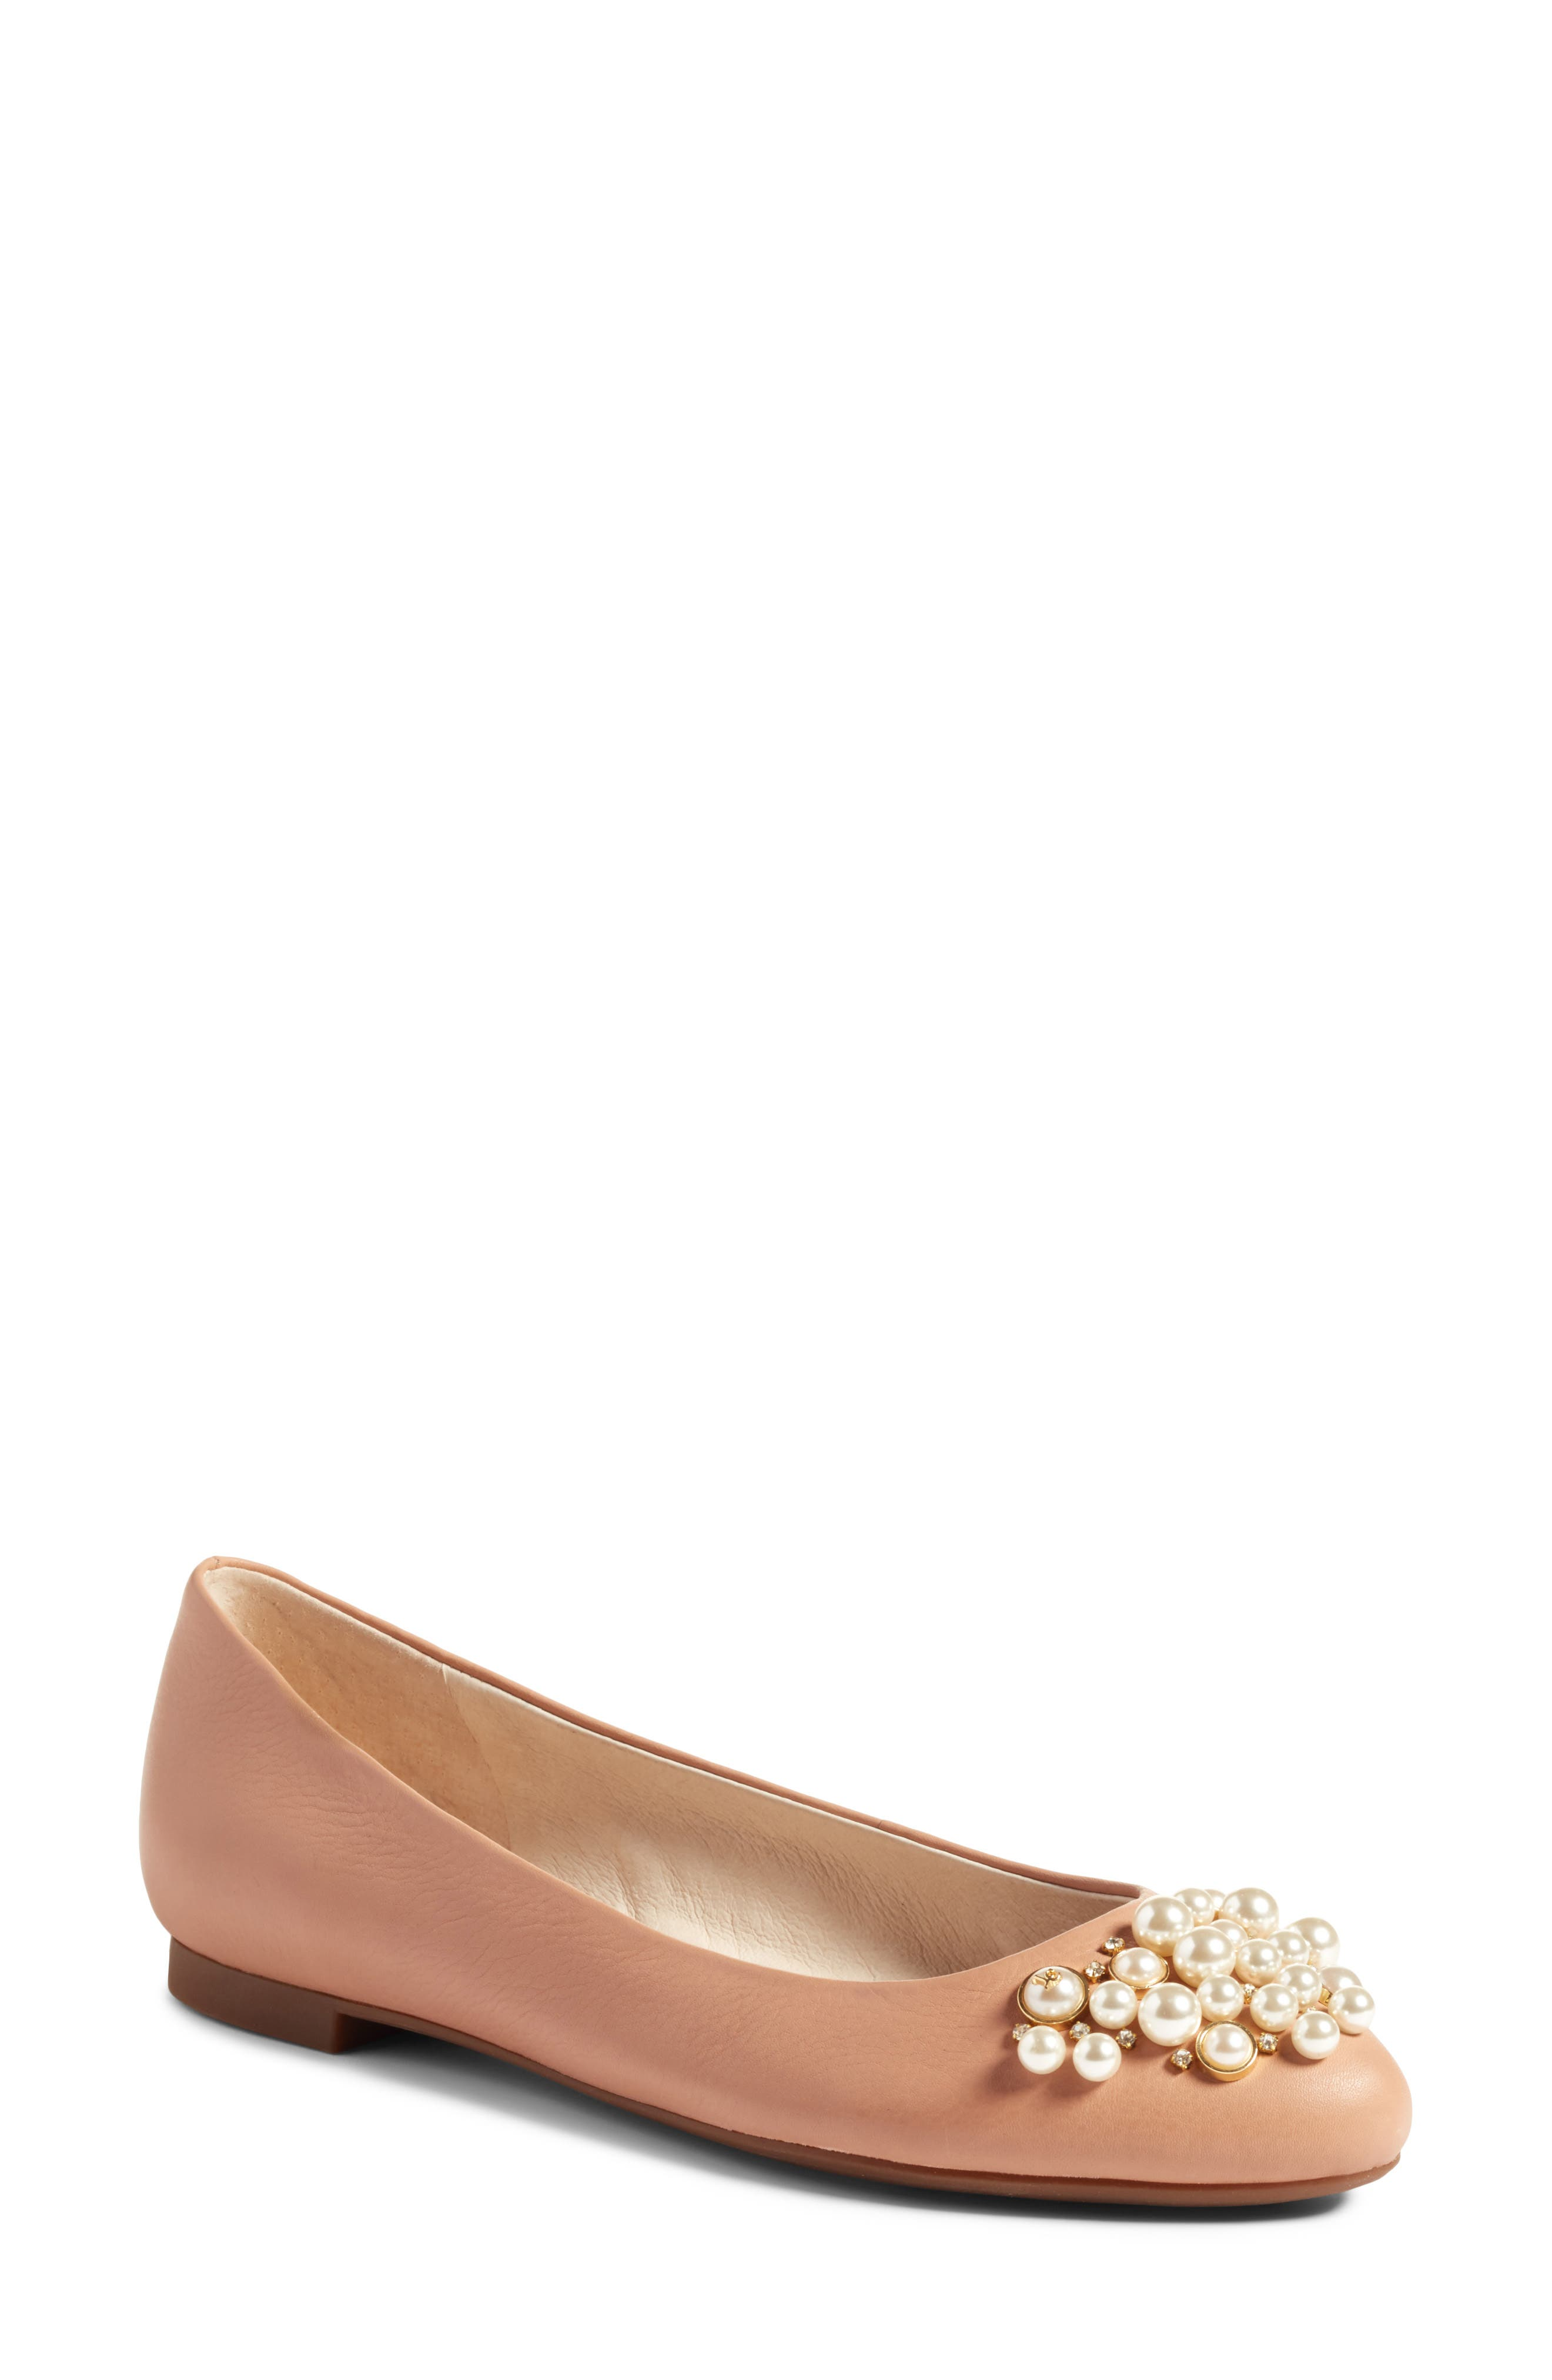 Louise et Cie Arella Imitation Pearl Embellished Flat (Women)